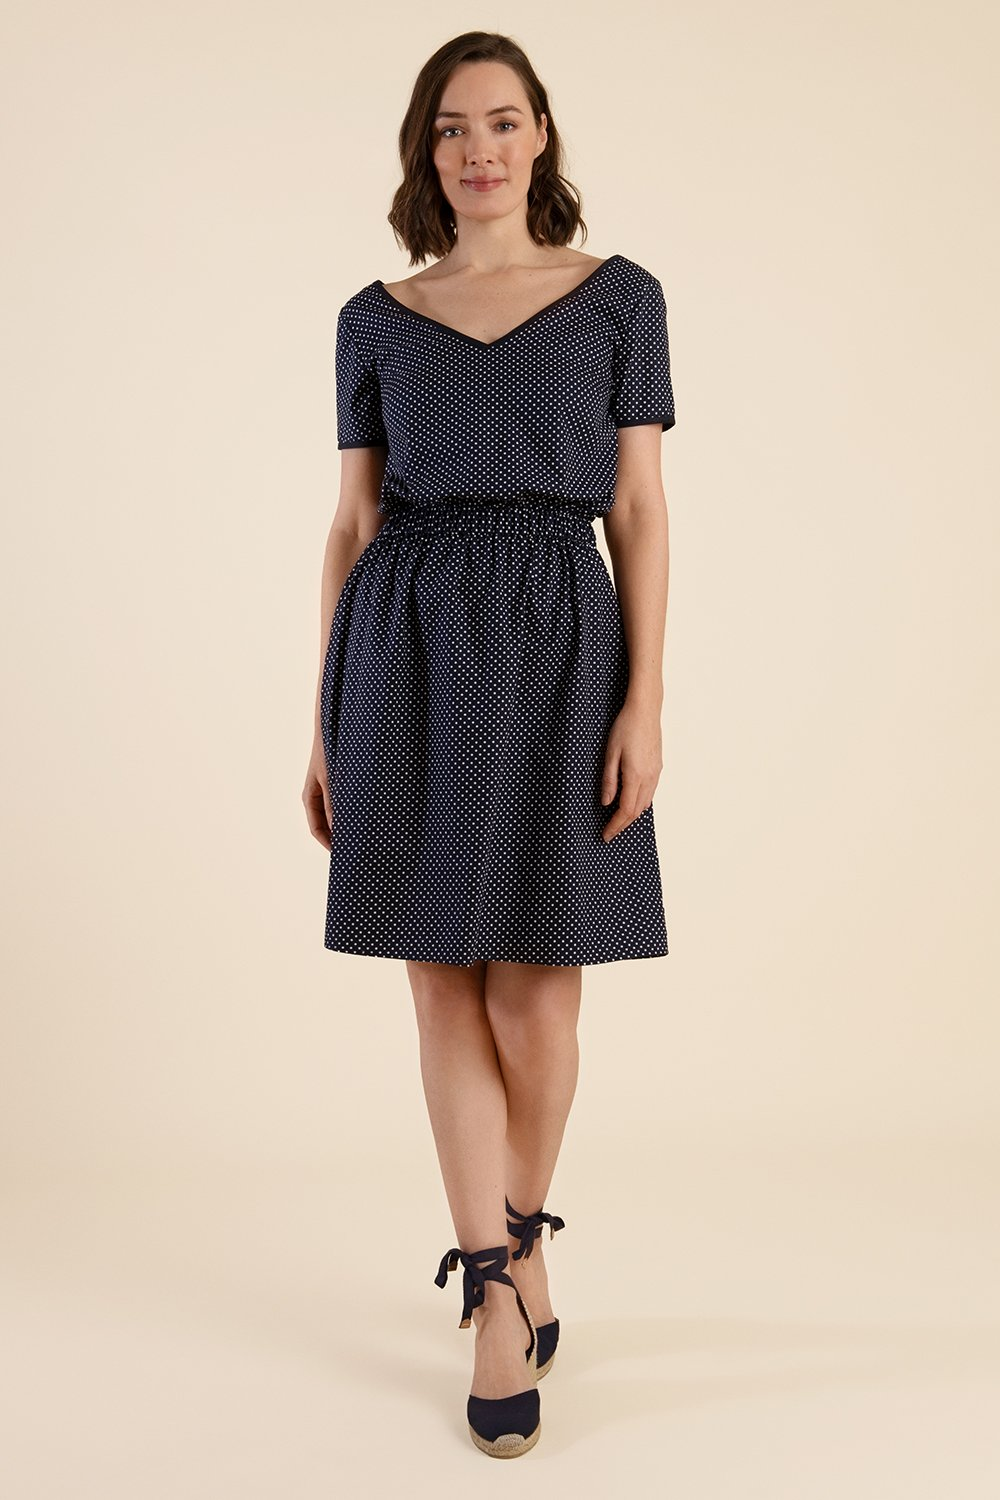 Navy Polka Dot Summer Dress